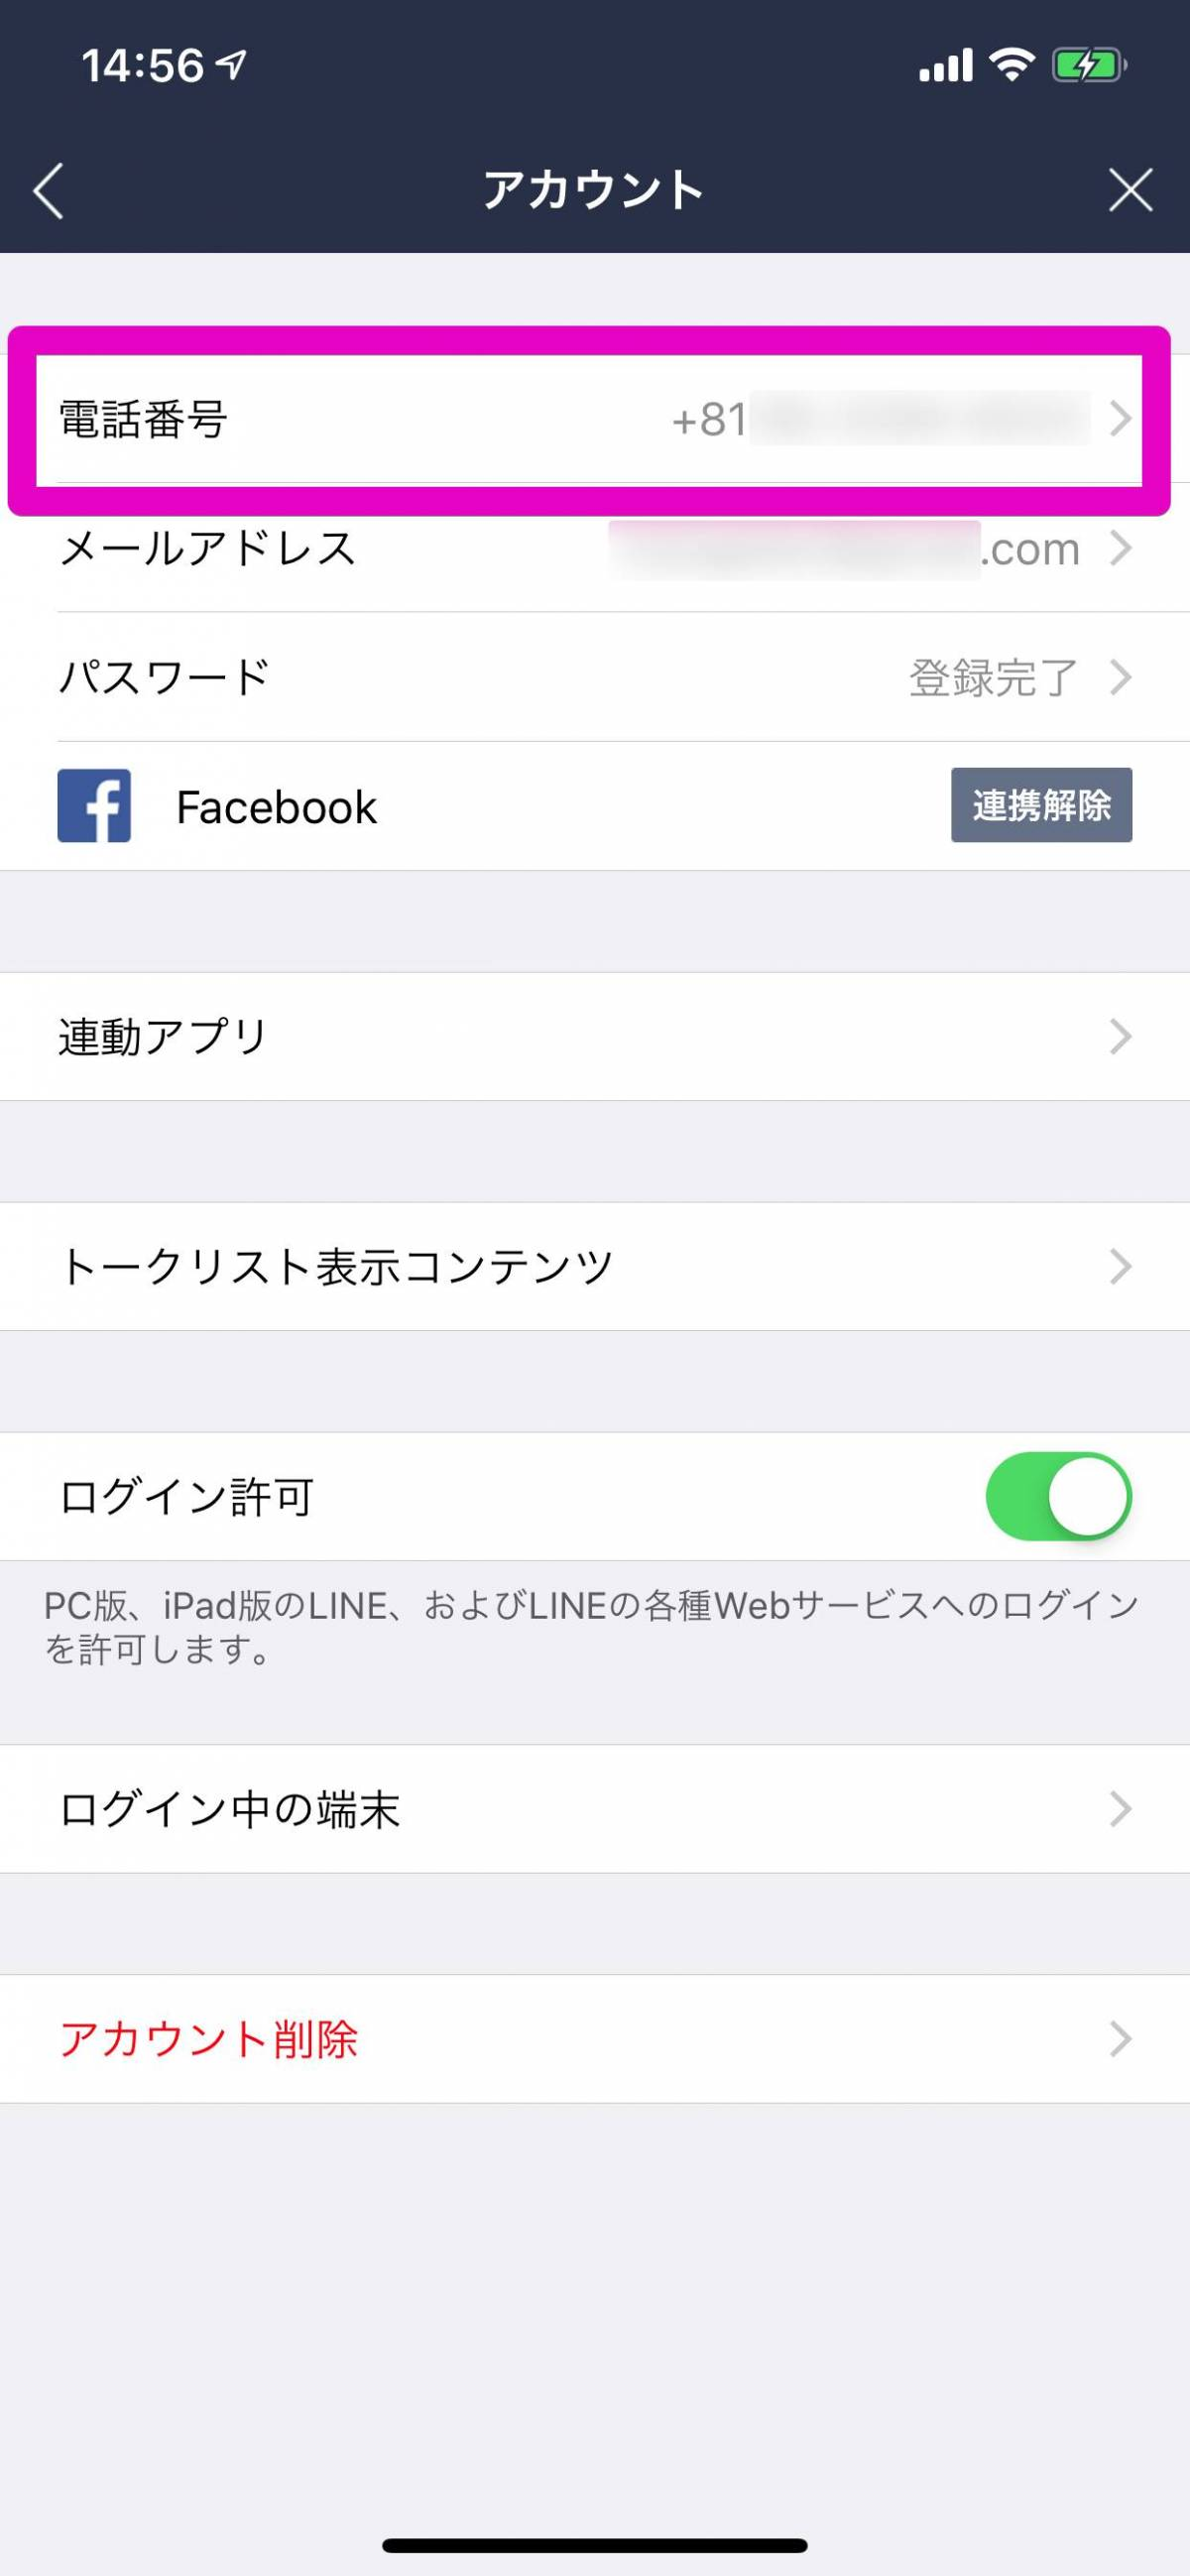 LINEに登録している電話番号を確認・変更する方法【iPhone/Android ...